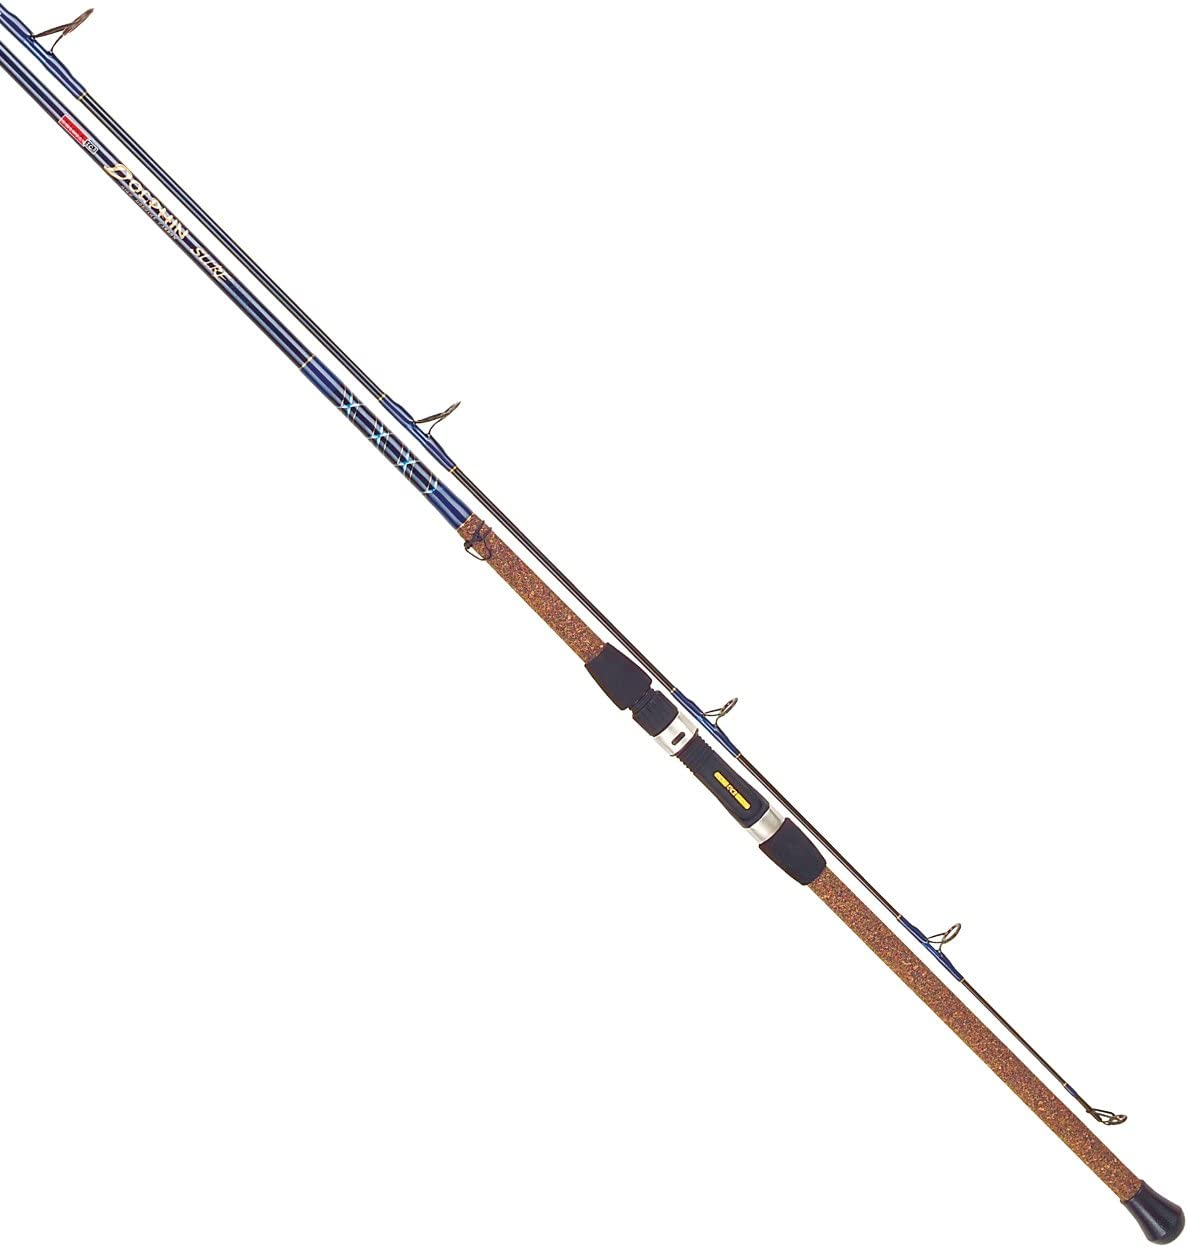 Tica UGSA Series Surf Spinning Fishing Rod